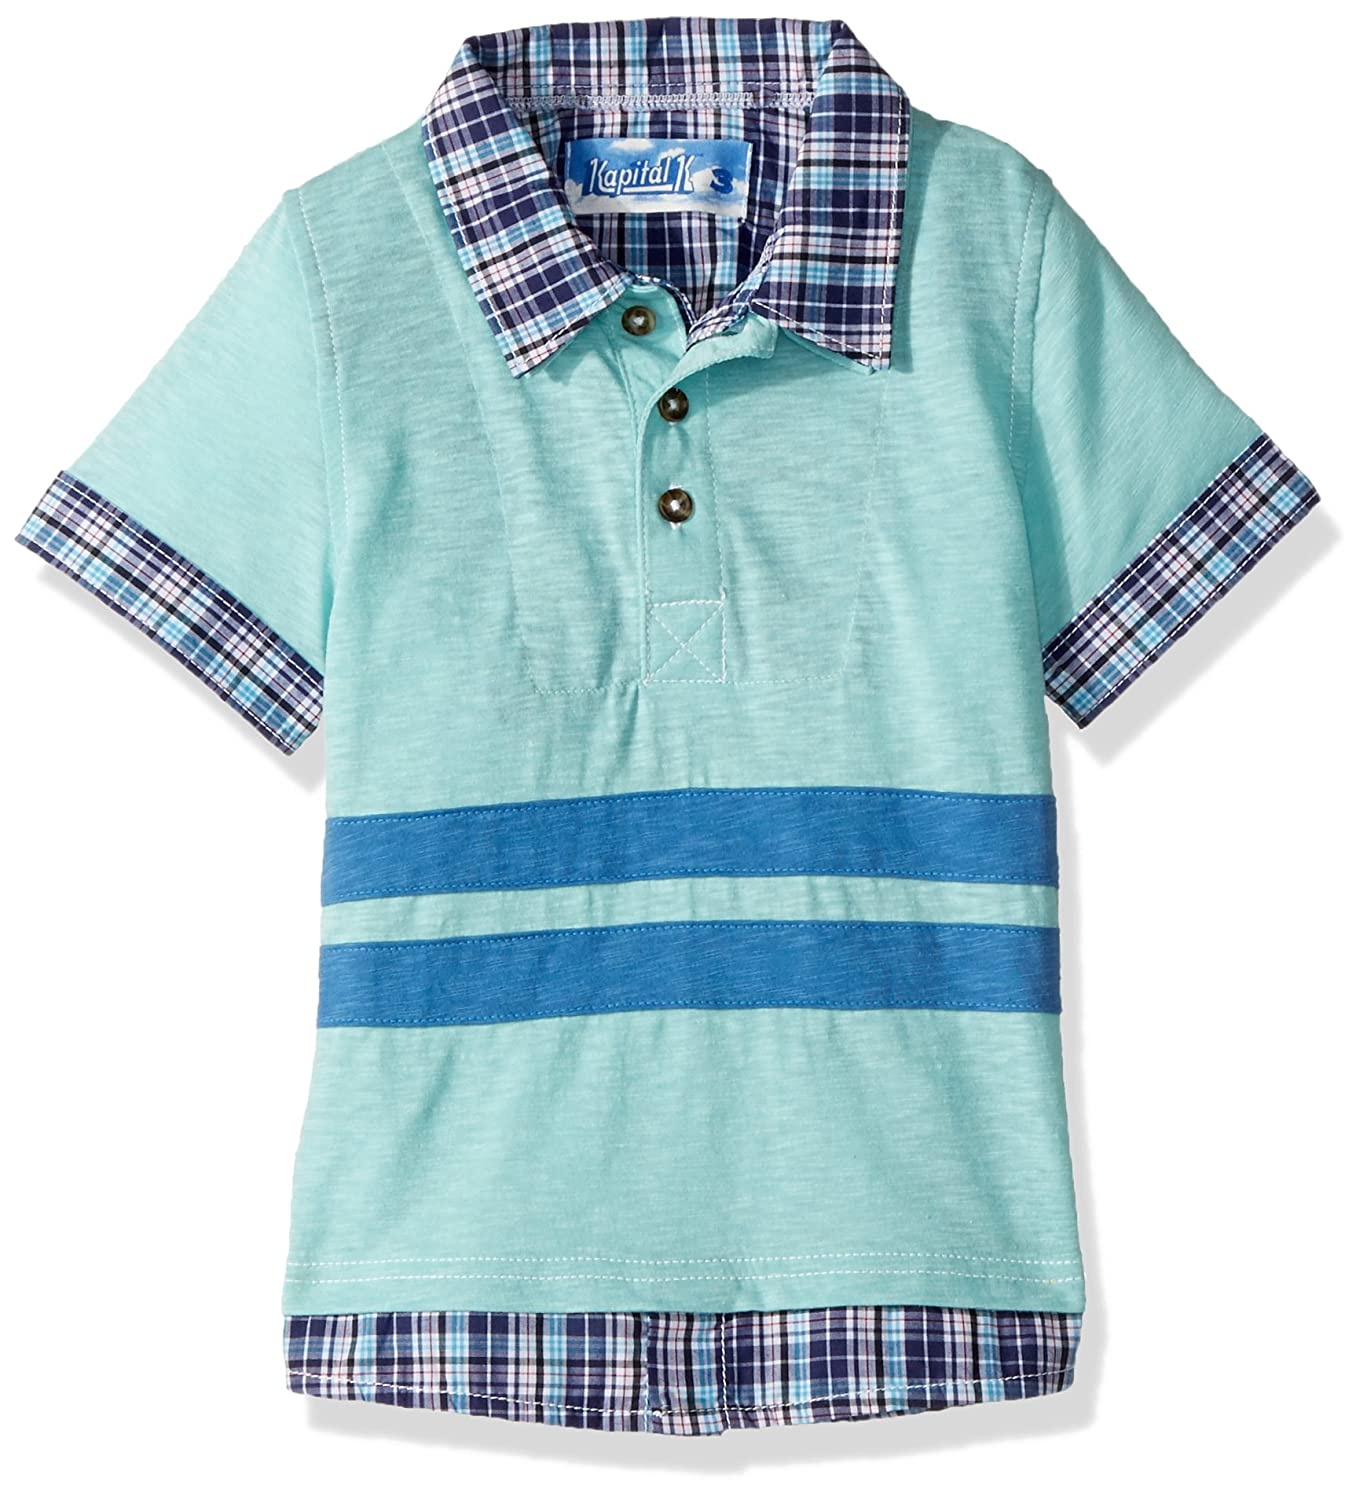 Kapital K Boys 2-in-1 Layered Polo with 3D Stripes